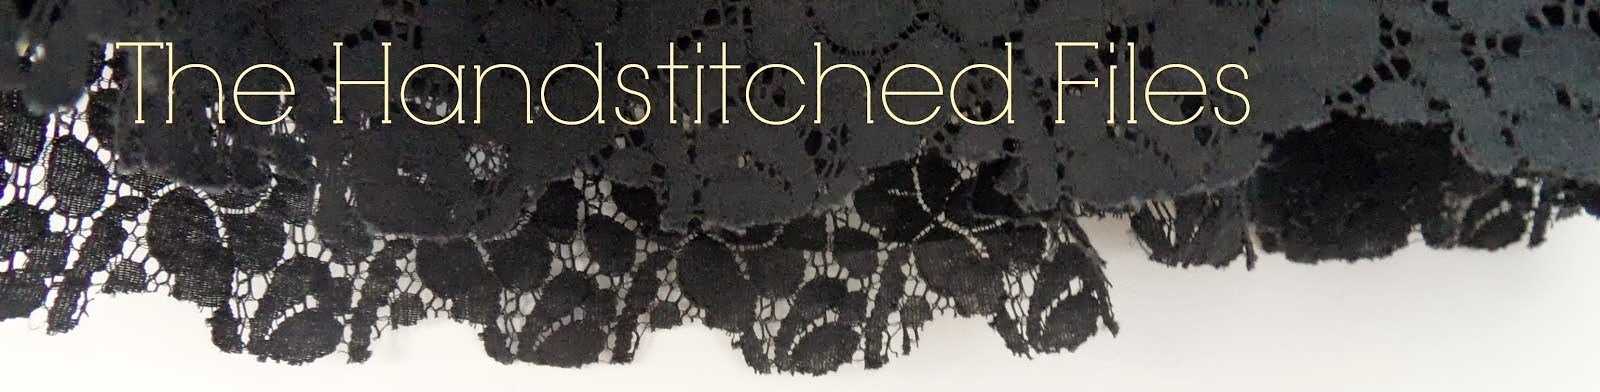 The Handstitched Files